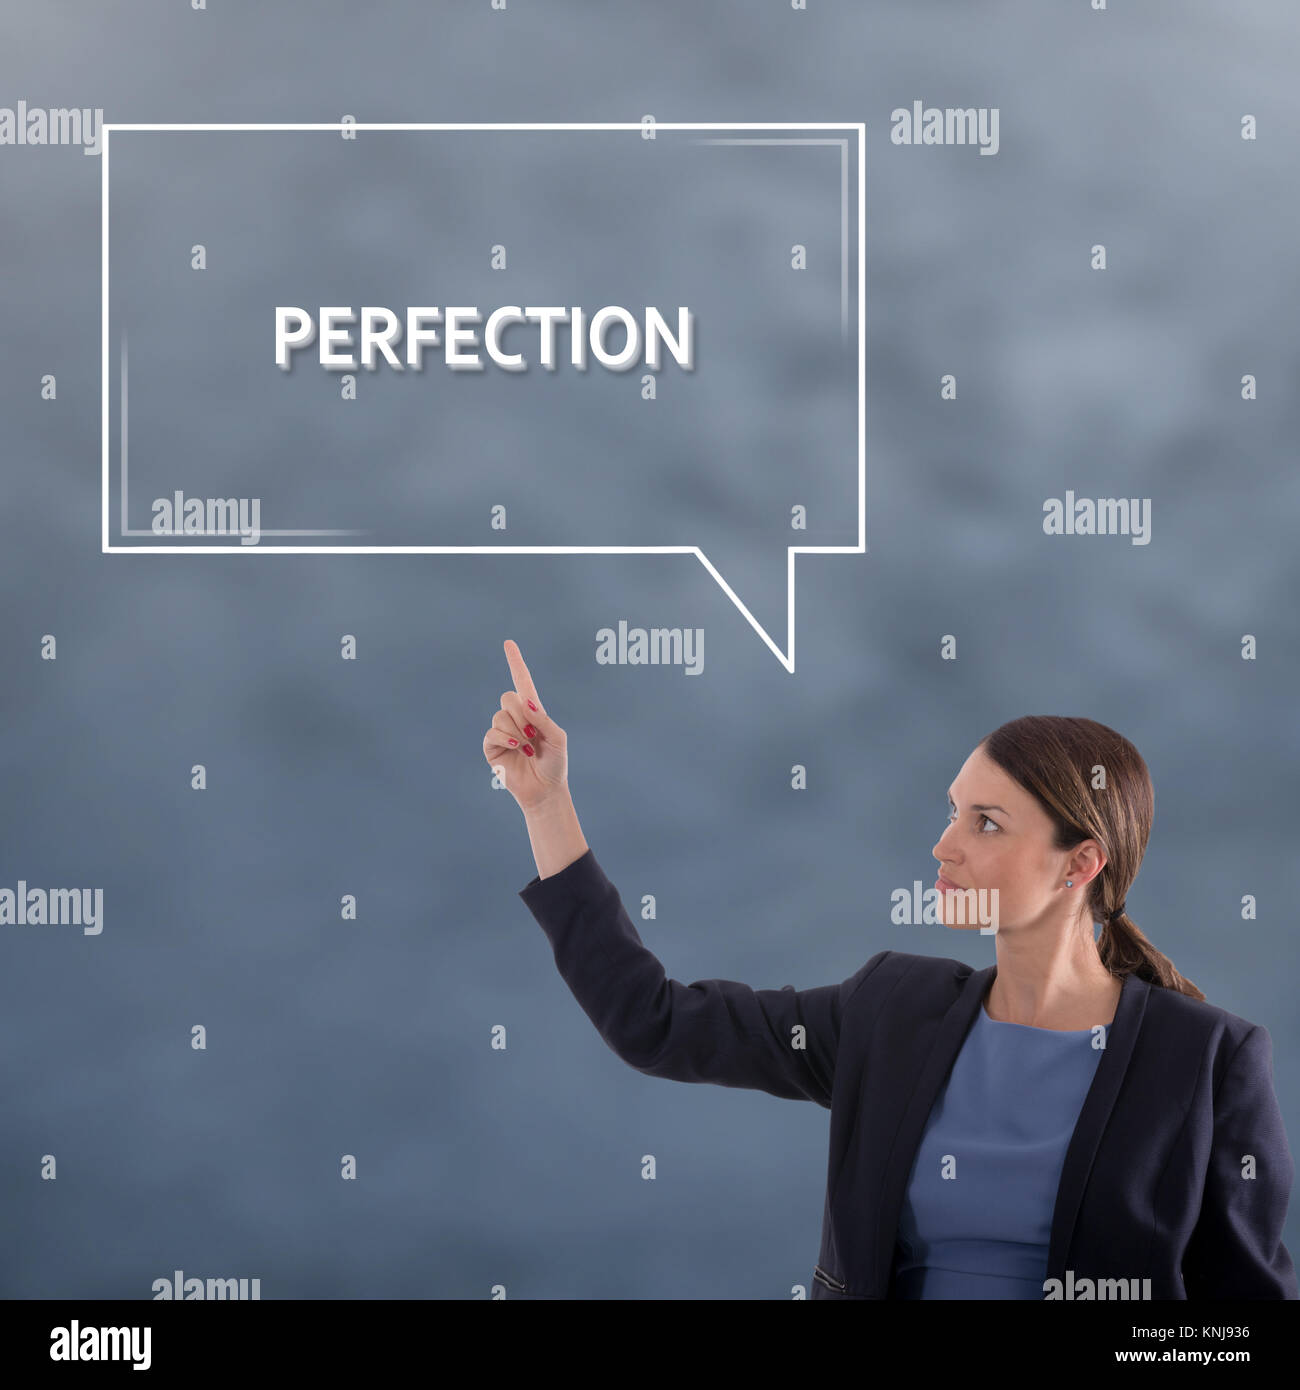 PERFECTION Business Concept. Business Woman Graphic Concept - Stock Image